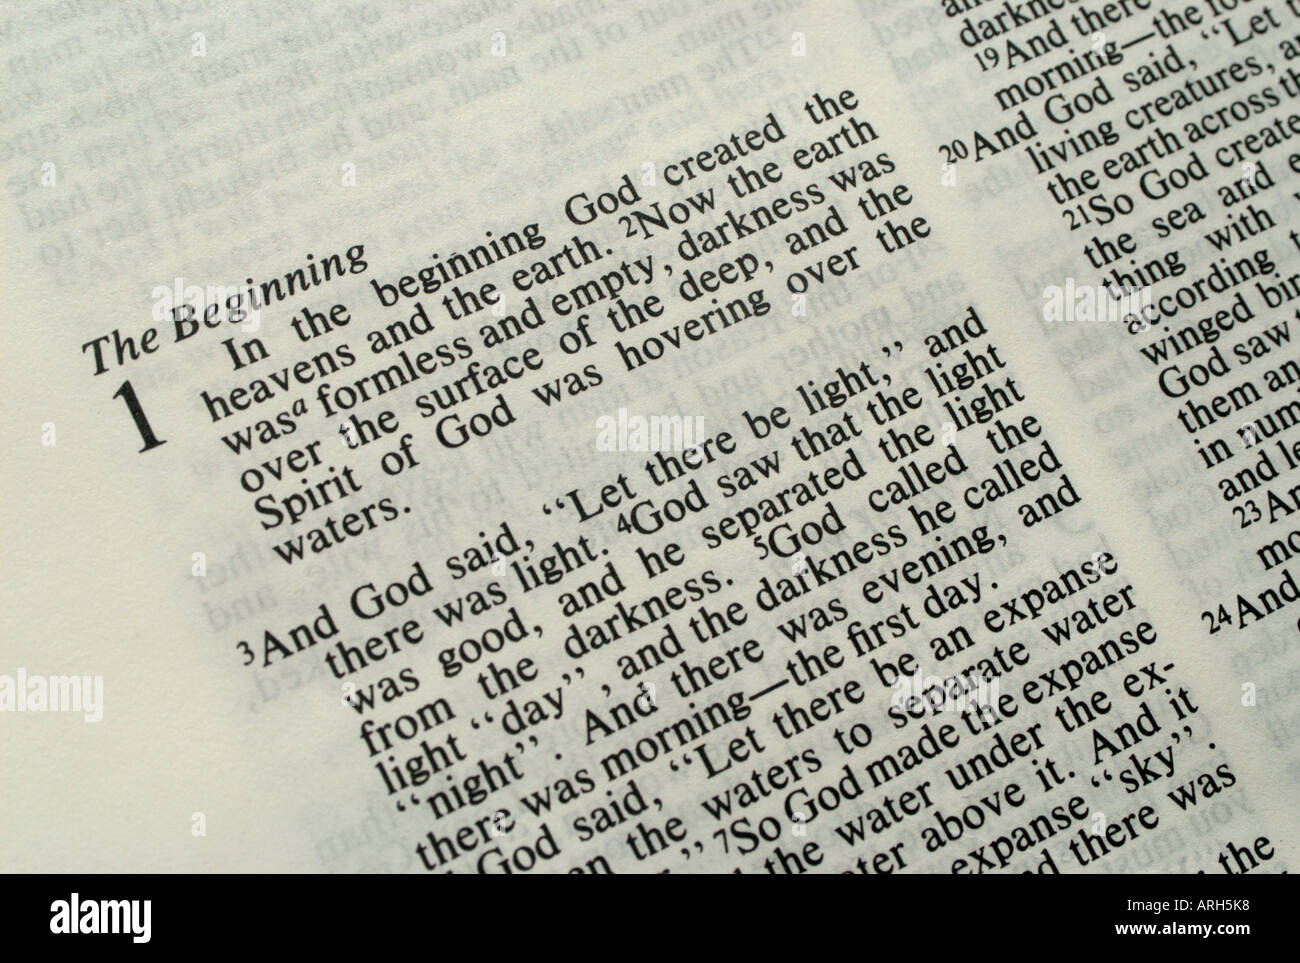 First page of the holy bible. Genesis 1. The Holy Bible ...